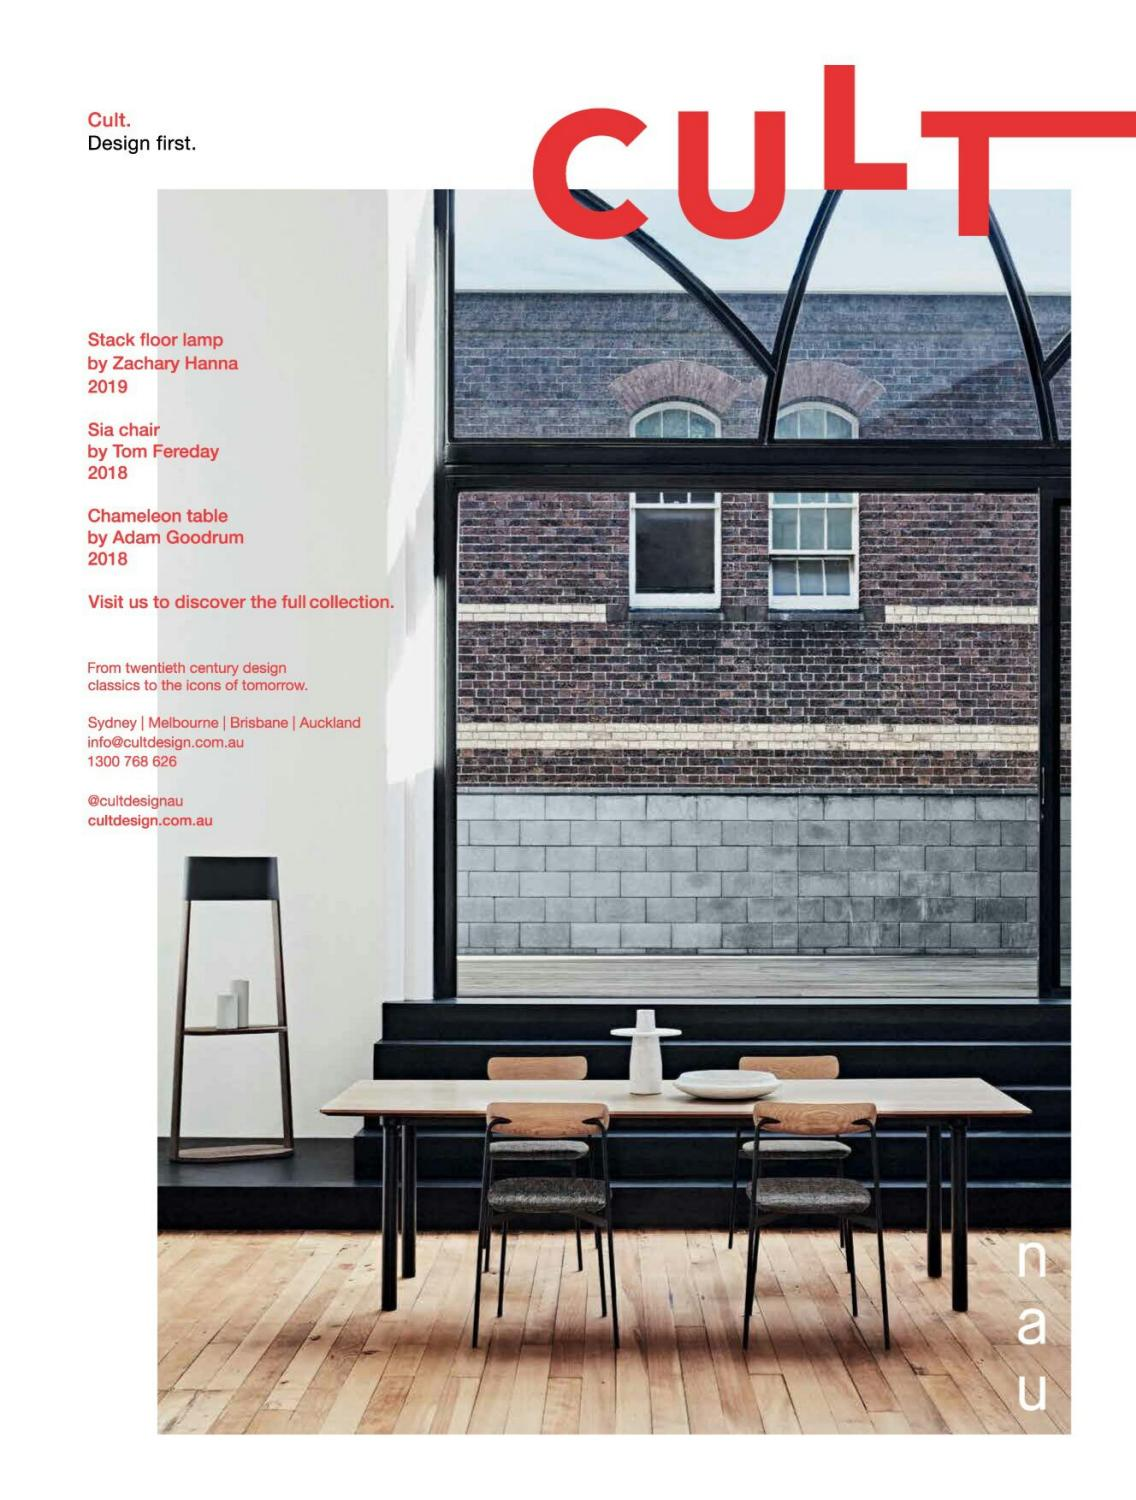 Idea Casa Full Sarno jukjhyk by verano22 - issuu